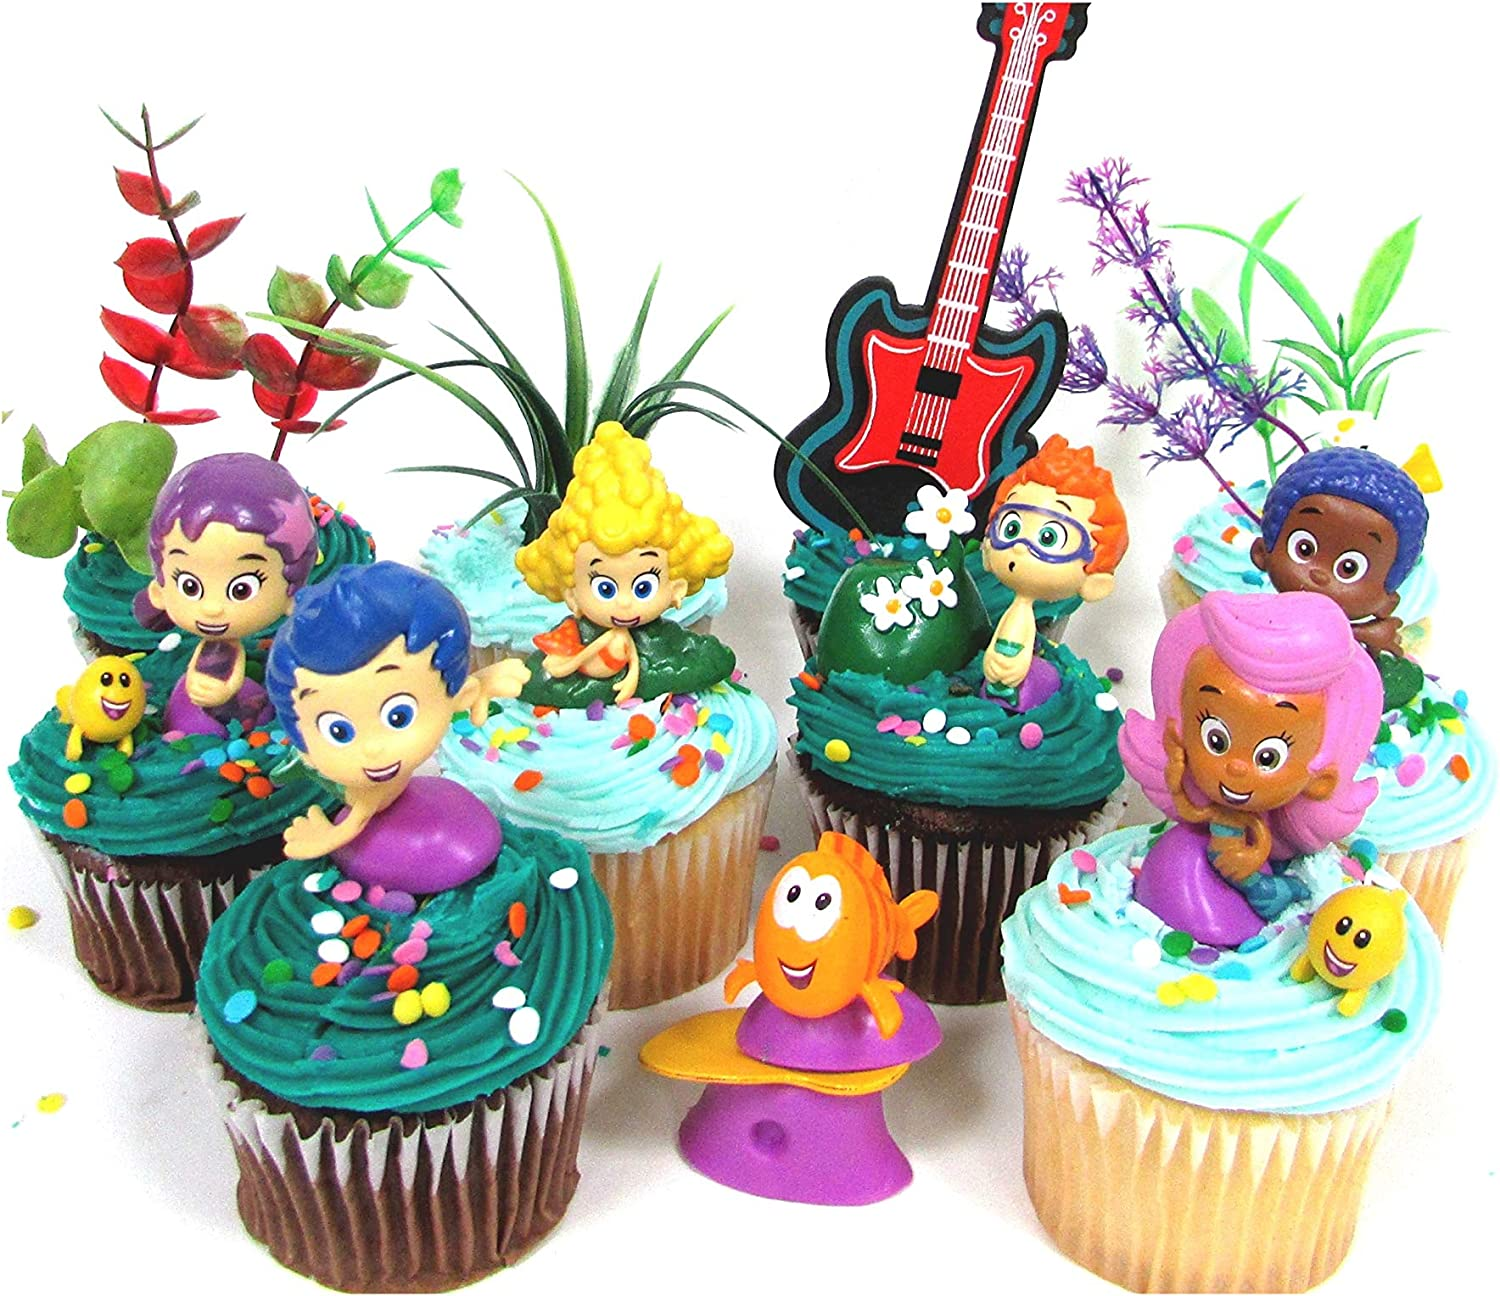 Bubble Guppies 19 Piece Birthday Cupcake Topper Set Featuring 12 Bubble Guppies 2 Characters